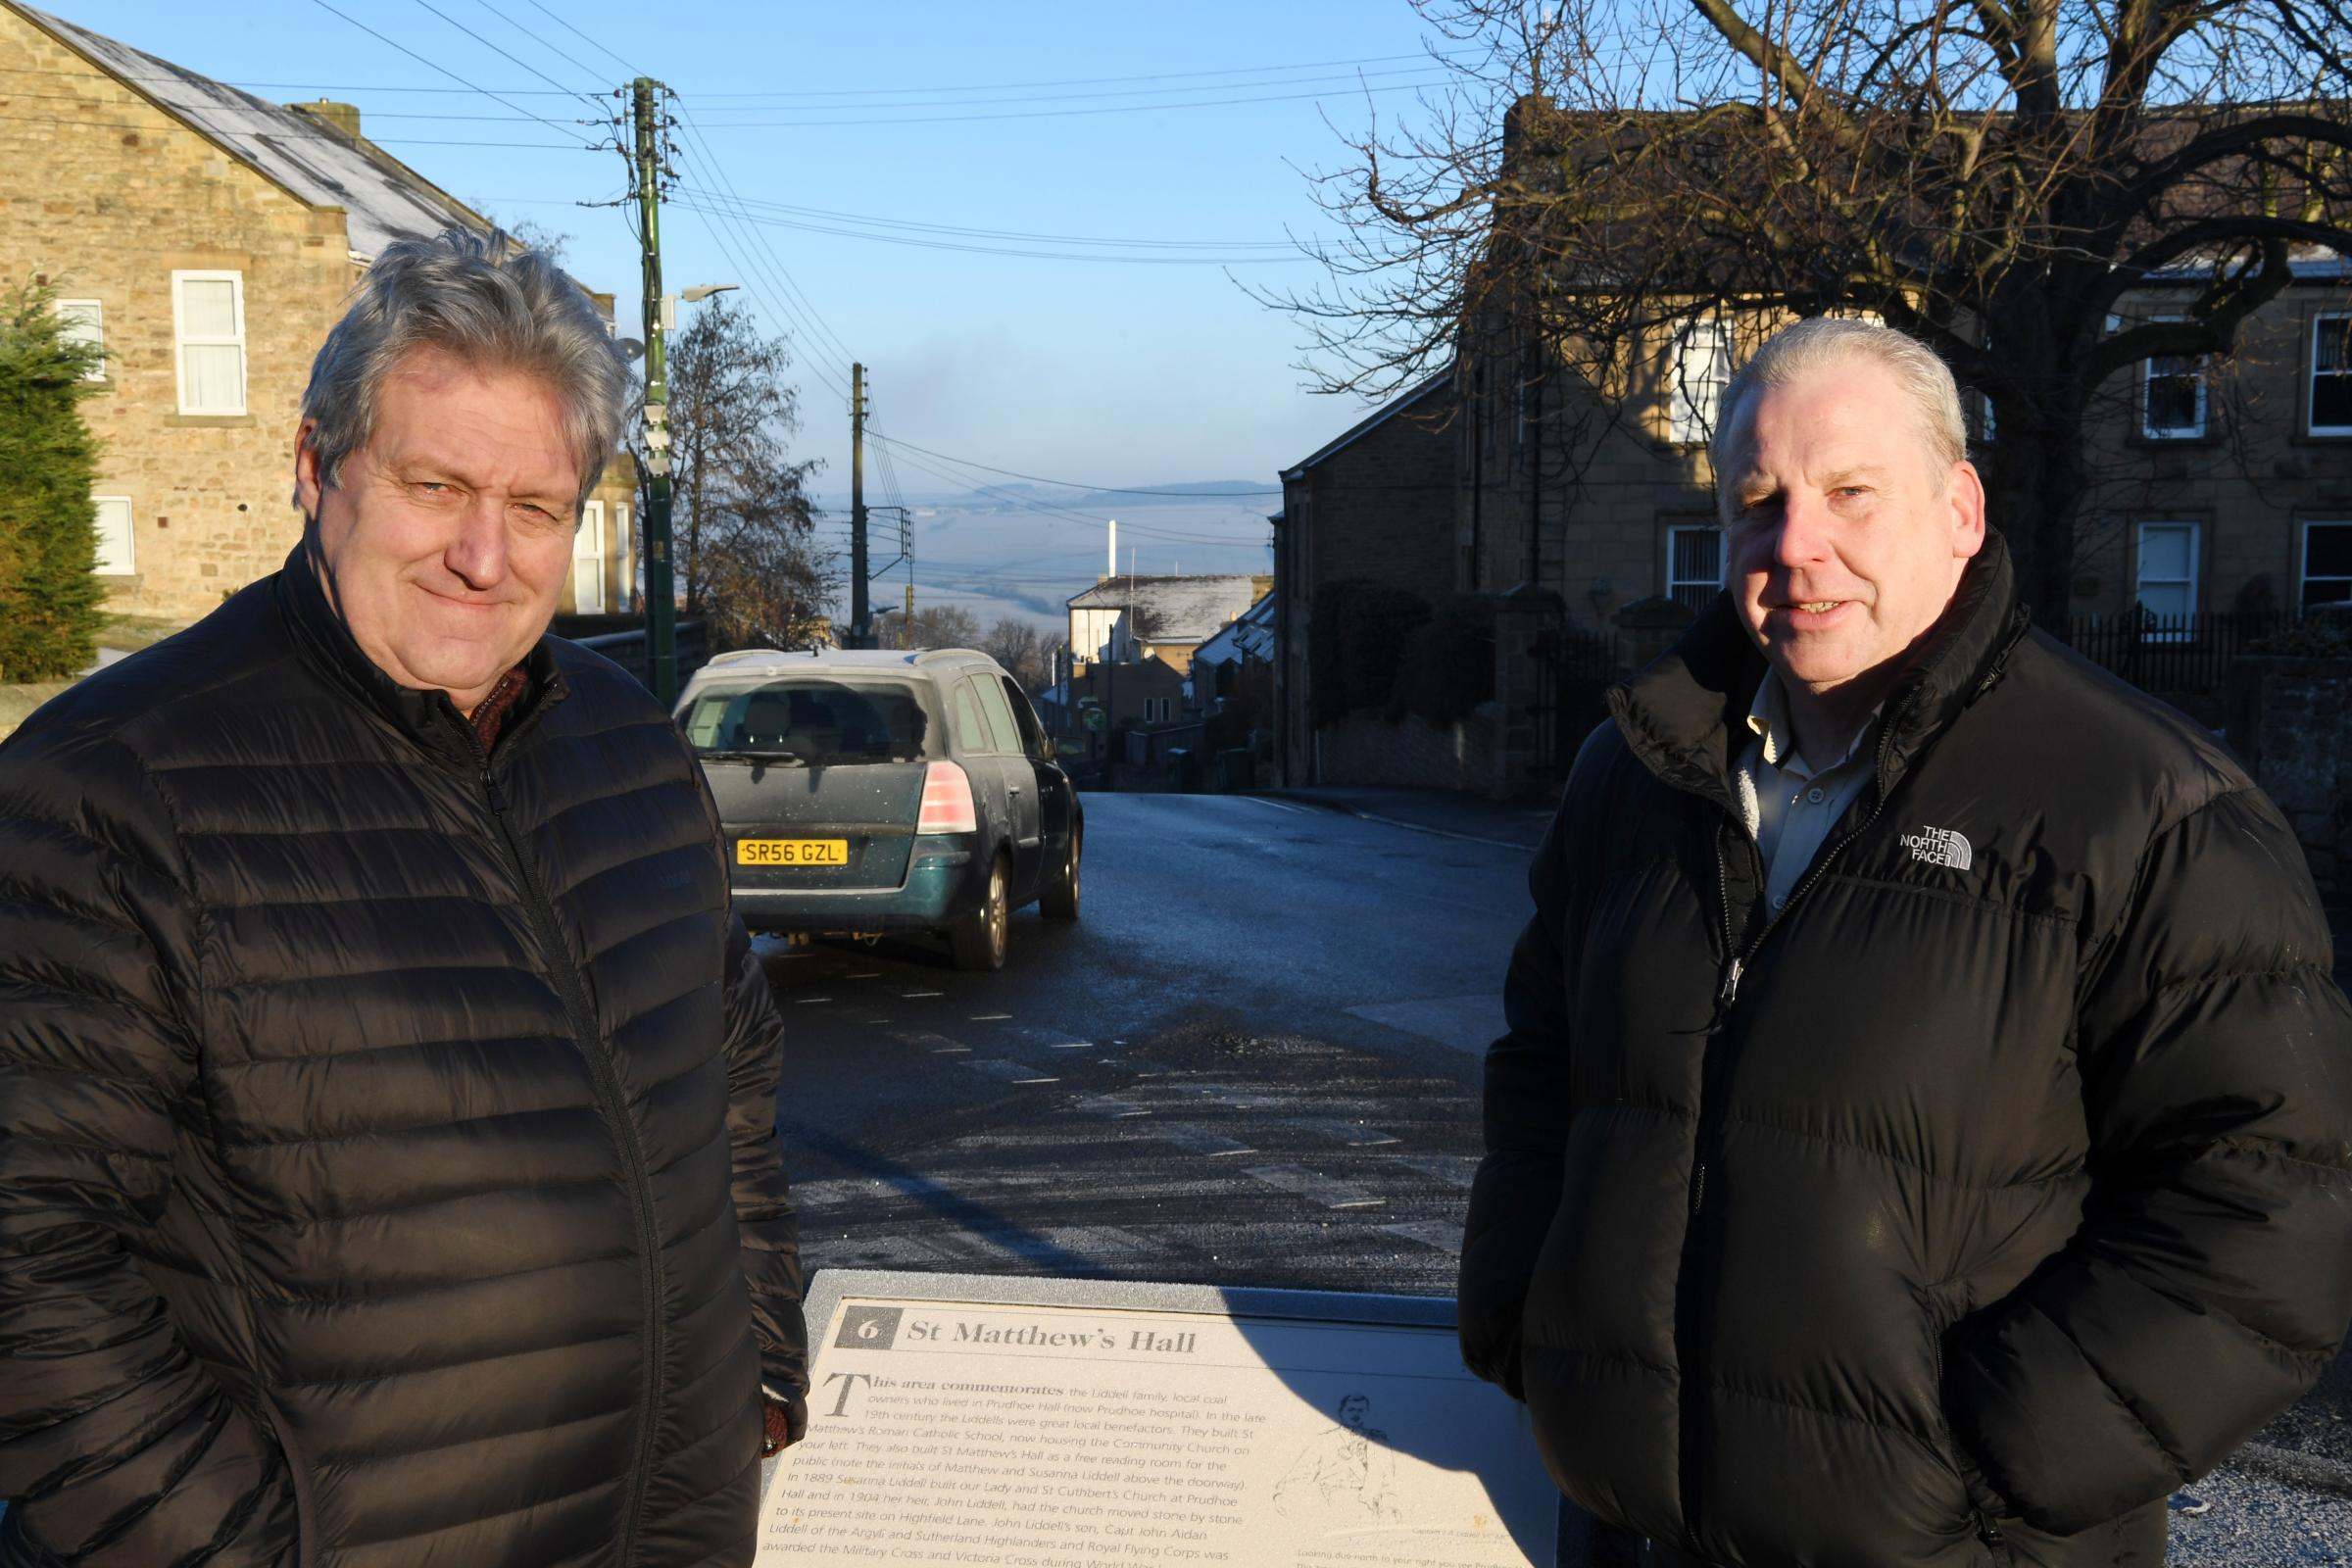 Coun. Ken Stow (left) and Coun. Gordon Stewart at the junction where a crossing is to installed in Prudhoe. 									  Photo: HX041948